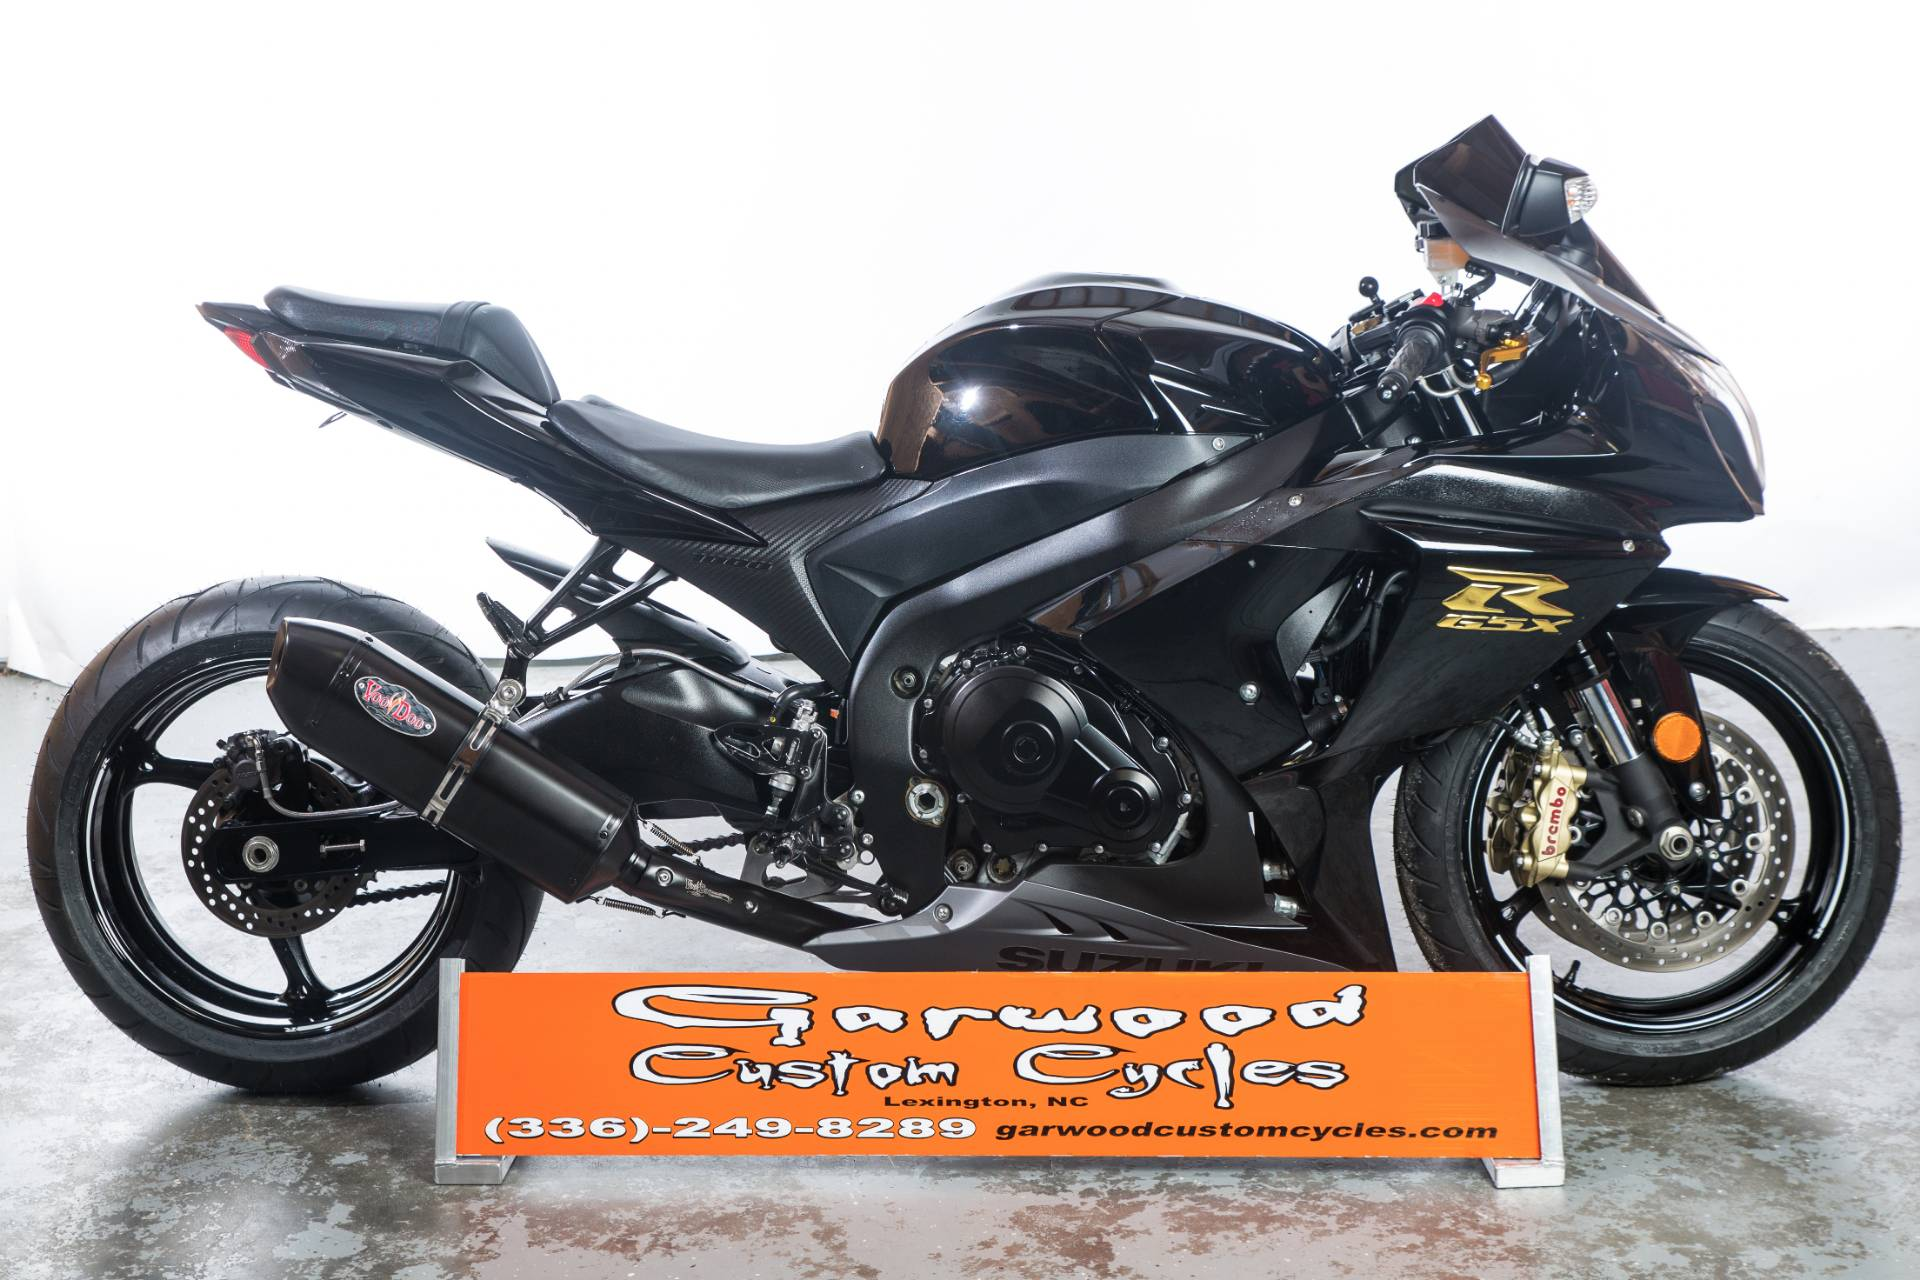 2014 Suzuki GSX-R 1000 in Lexington, North Carolina